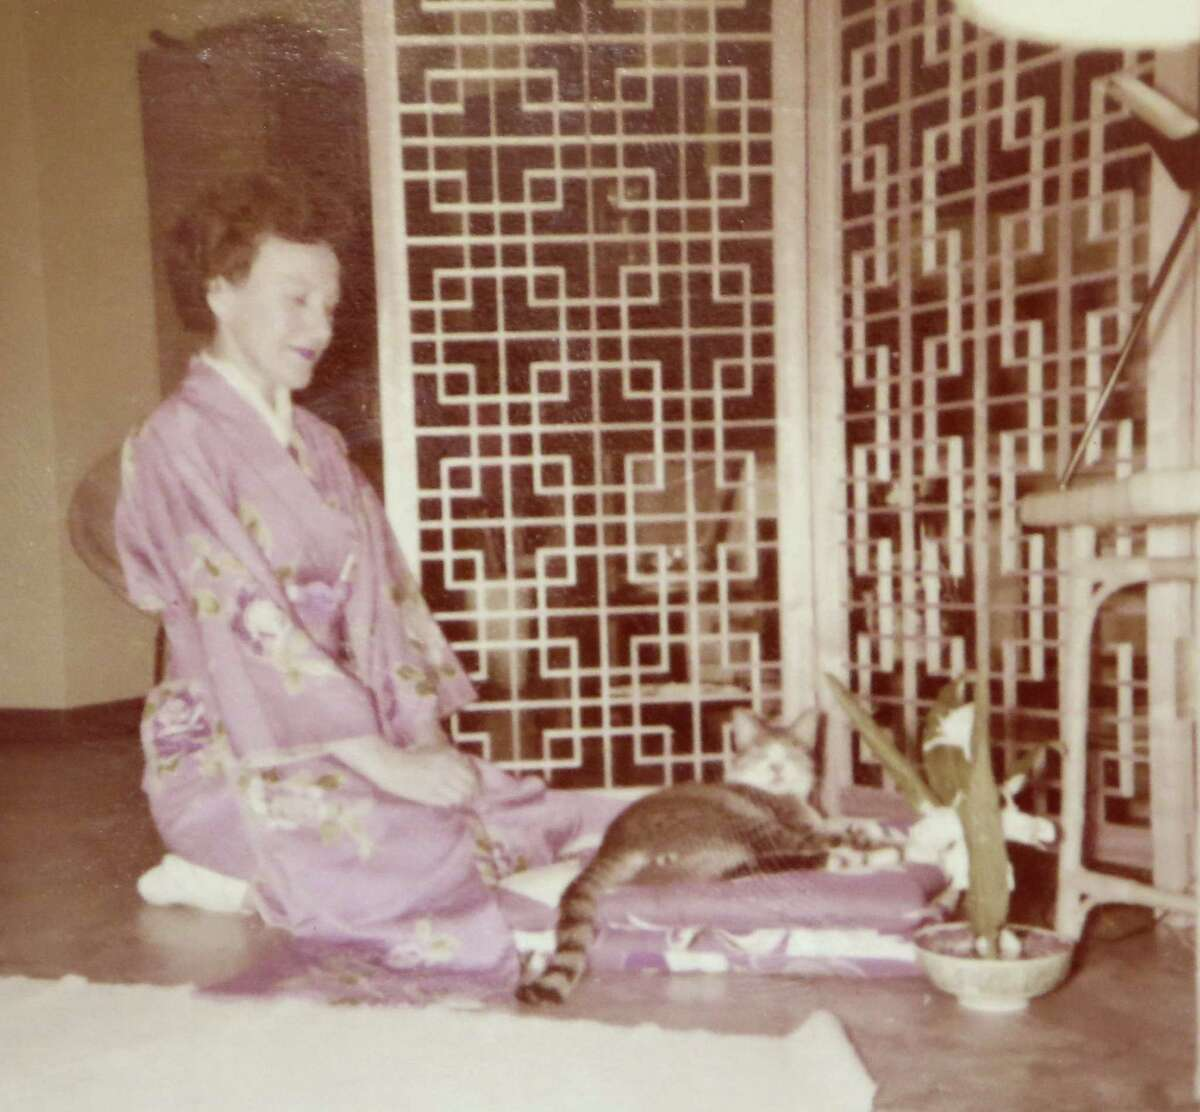 Lucy Coffey, along with her cat Buster in Okinawa. Coffey the nation's oldest woman veteran, served in the procurement office of the Women's Army Auxiliary Corps during World War II. A group in Austin wants to send her to Washington for an honor flight.